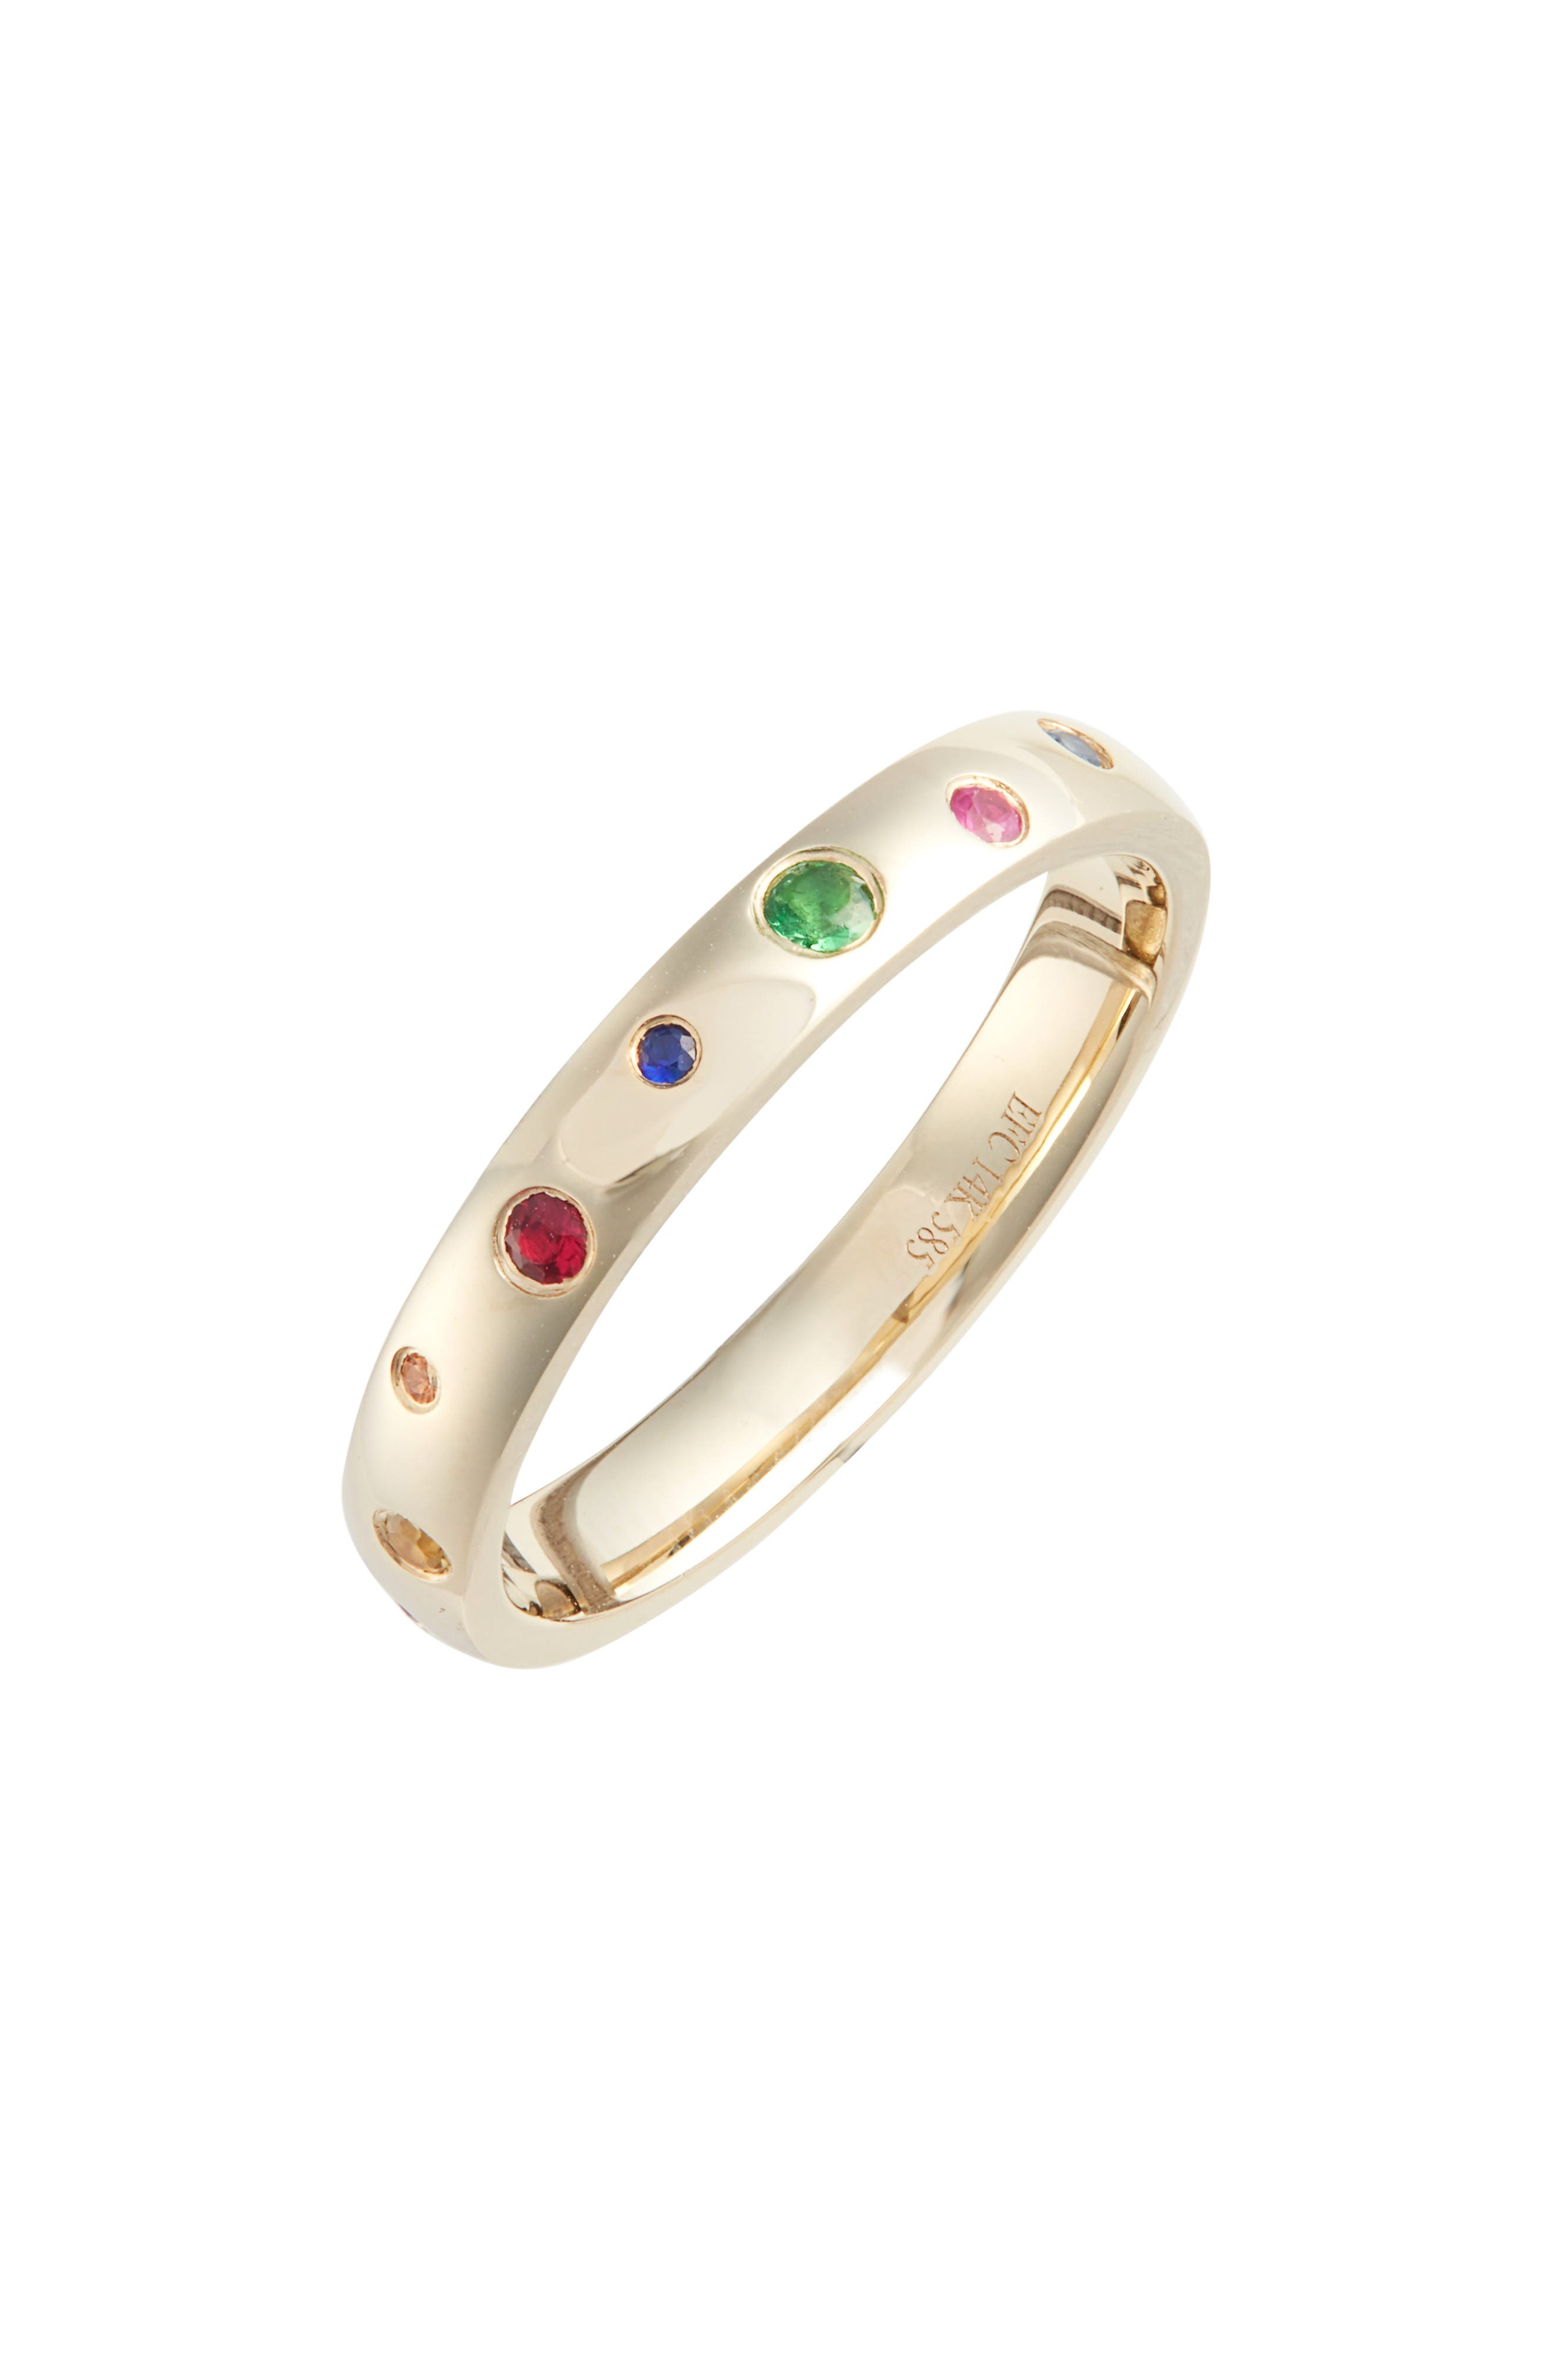 Rainbow Speckled Stacking Ring,                             Main thumbnail 1, color,                             YELLOW GOLD